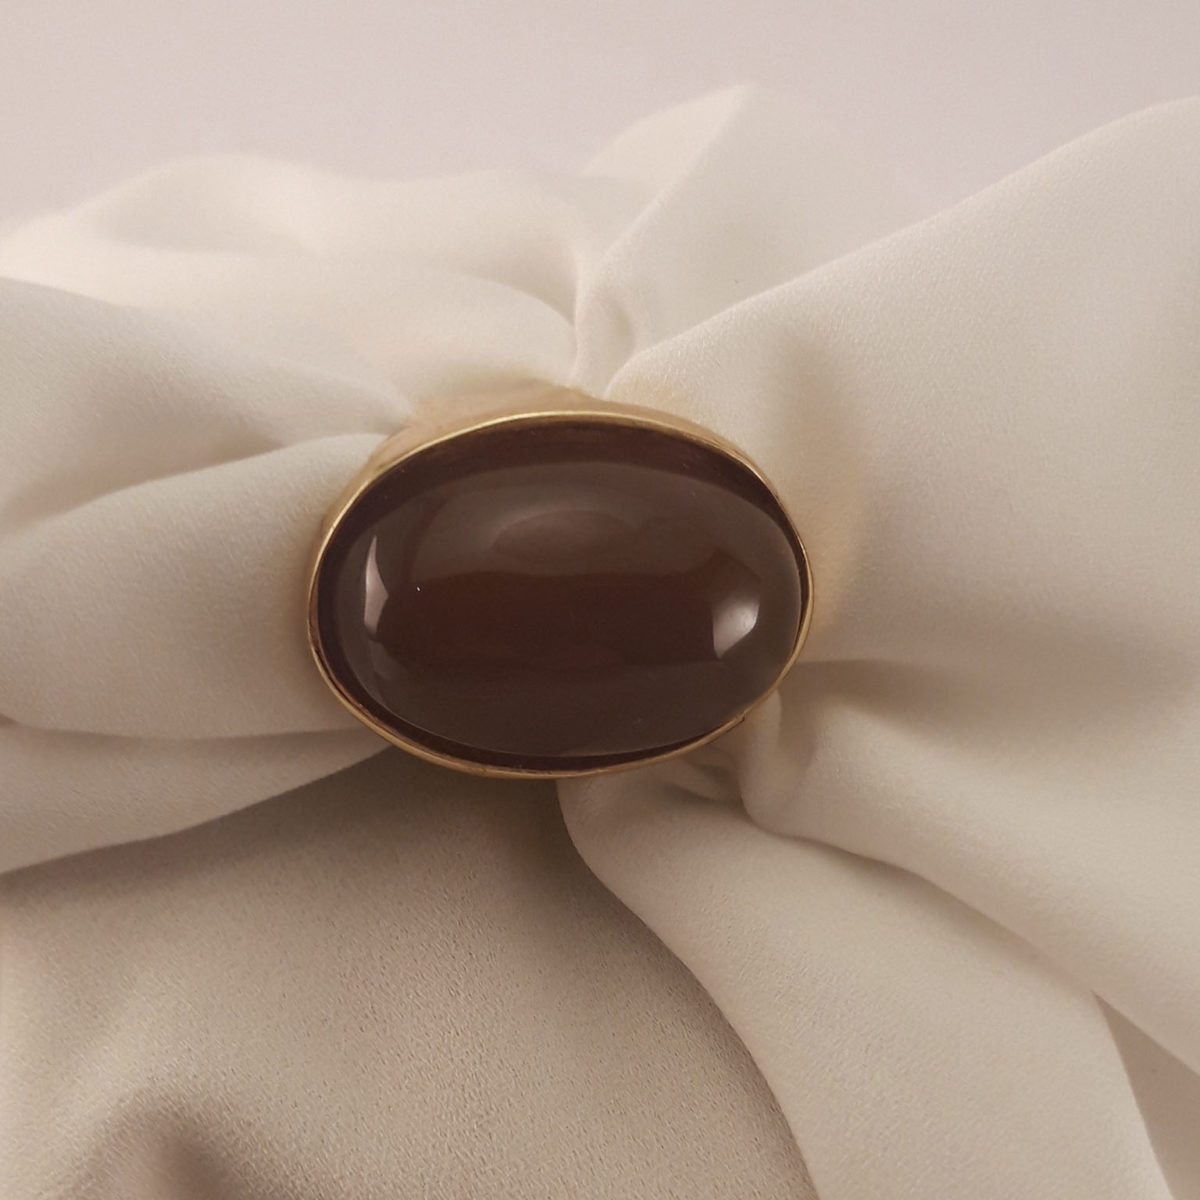 Gold Colored Ring With Brown Oval Stone